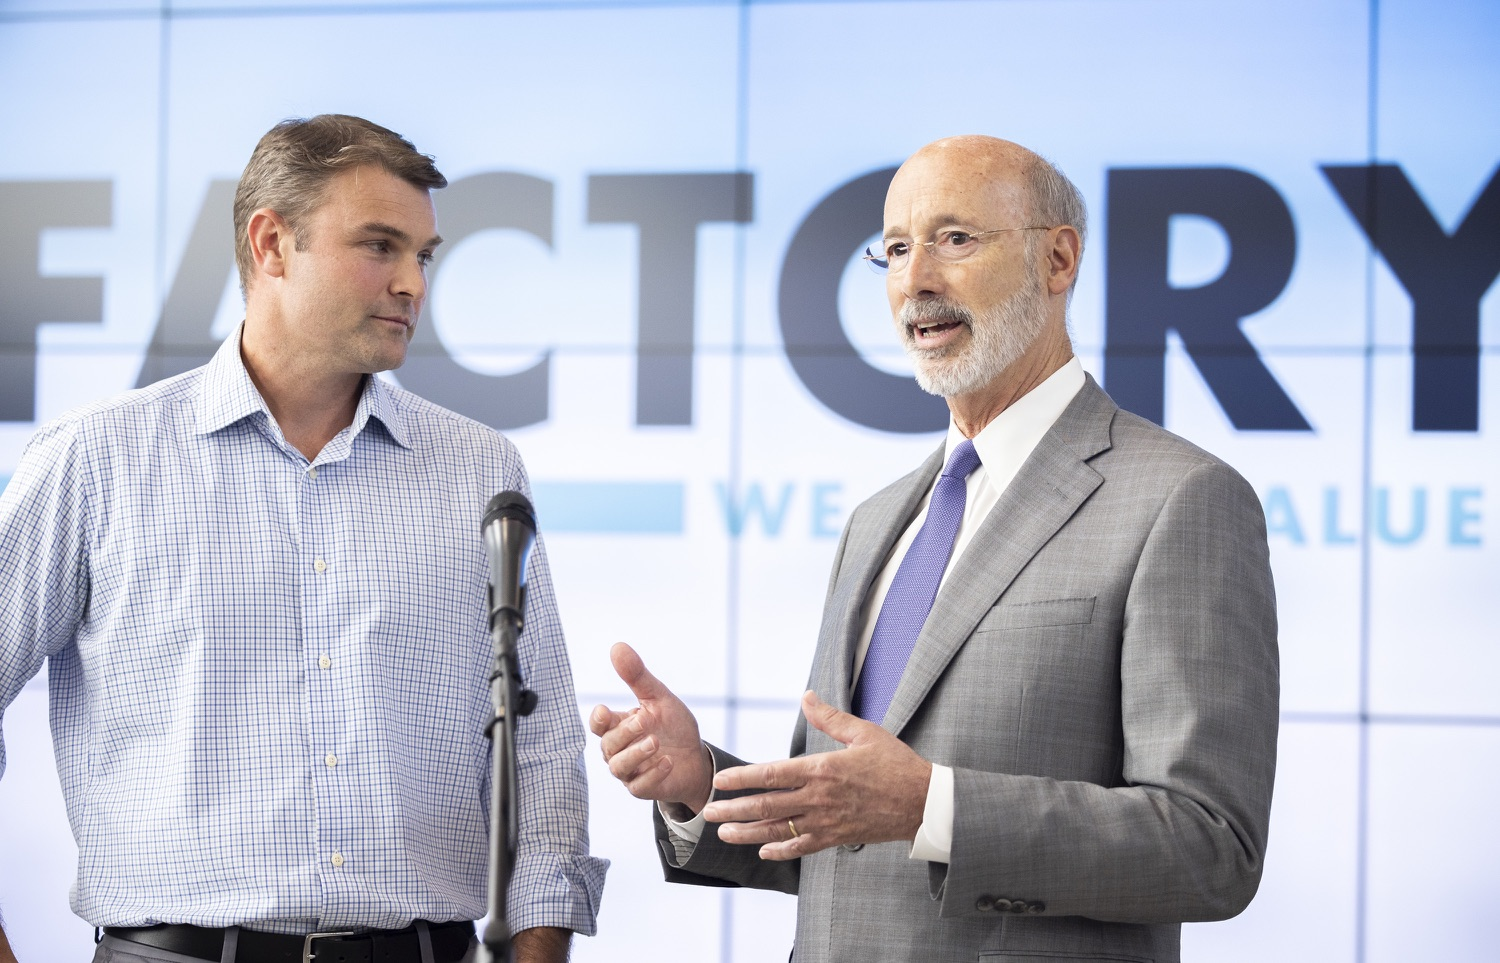 """<a href=""""https://filesource.wostreaming.net/commonwealthofpa/photo/18941_gov_economicDevelopment_dz_001.jpg"""" target=""""_blank"""">⇣Download Photo<br></a>Pennsylvania Governor Tom Wolf and Keith Caldwell, Partner  Factory LLC speaking with the press.  Governor Tom Wolf today visited Factory LLC in Bethlehem to tour the facility and highlight the importance of investing in Pennsylvanias start-up companies. During the visit, he met with companies affiliated with Factory, including Stuffed Puffs®, which received a $1 million funding proposal from the commonwealth in 2019 to expand its manufacturing operations and create jobs, Mikeys®, Pipcorn®, Honey Stinger®, and ROAR® Organic. Bethlehem, PA  July 19, 2021"""